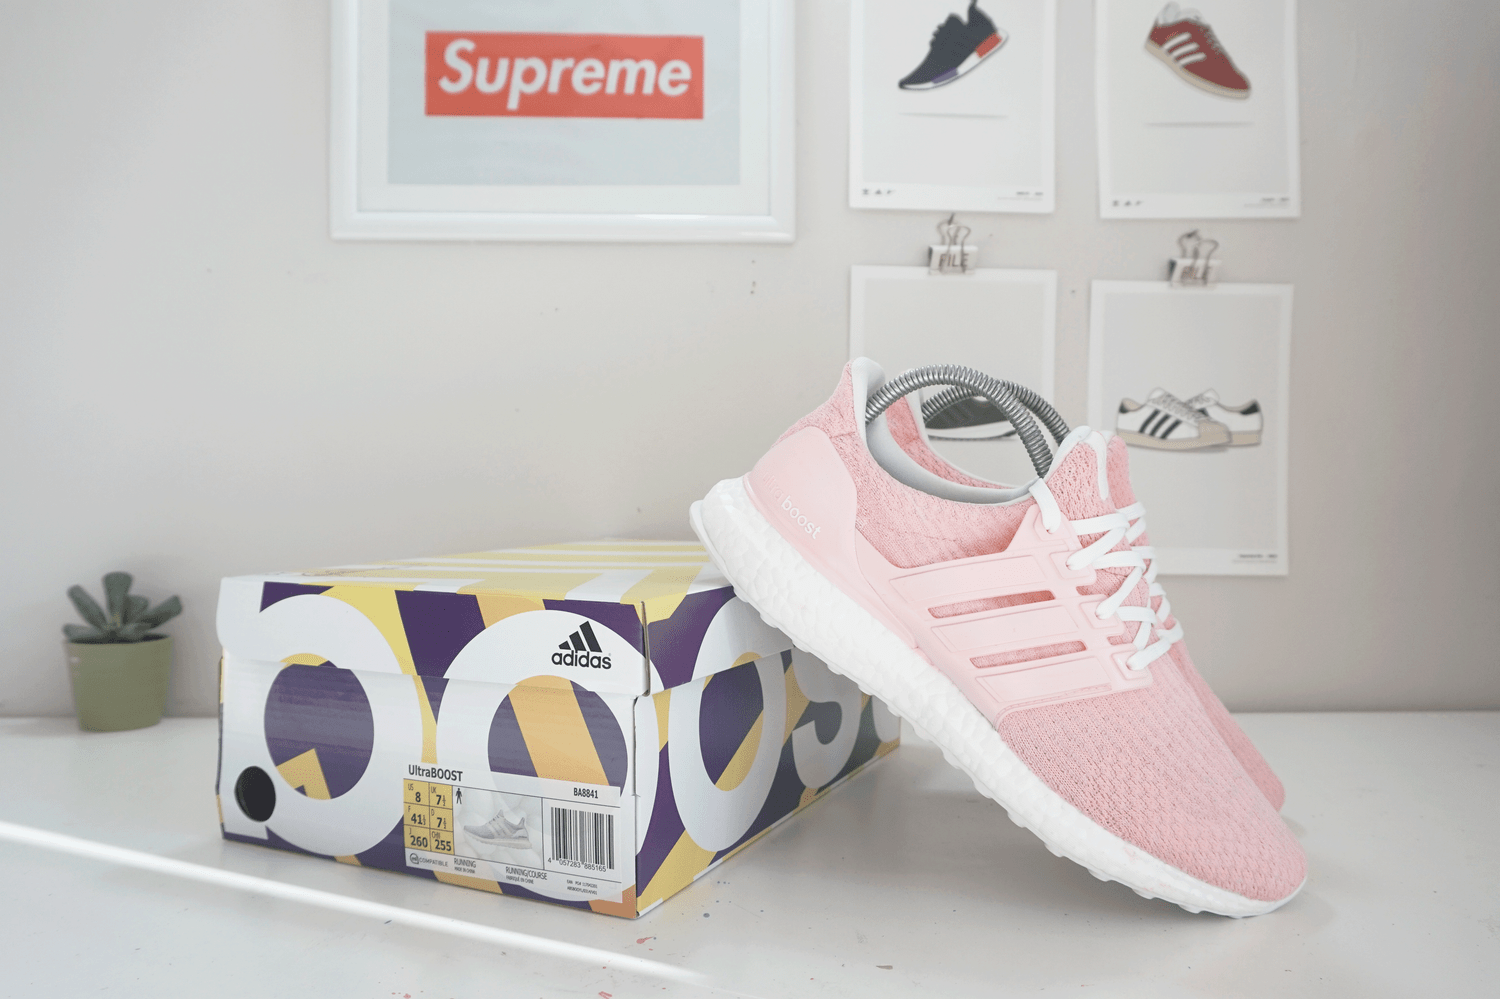 Image of Adidas Ultraboost 3.0 x Candy Floss Pink